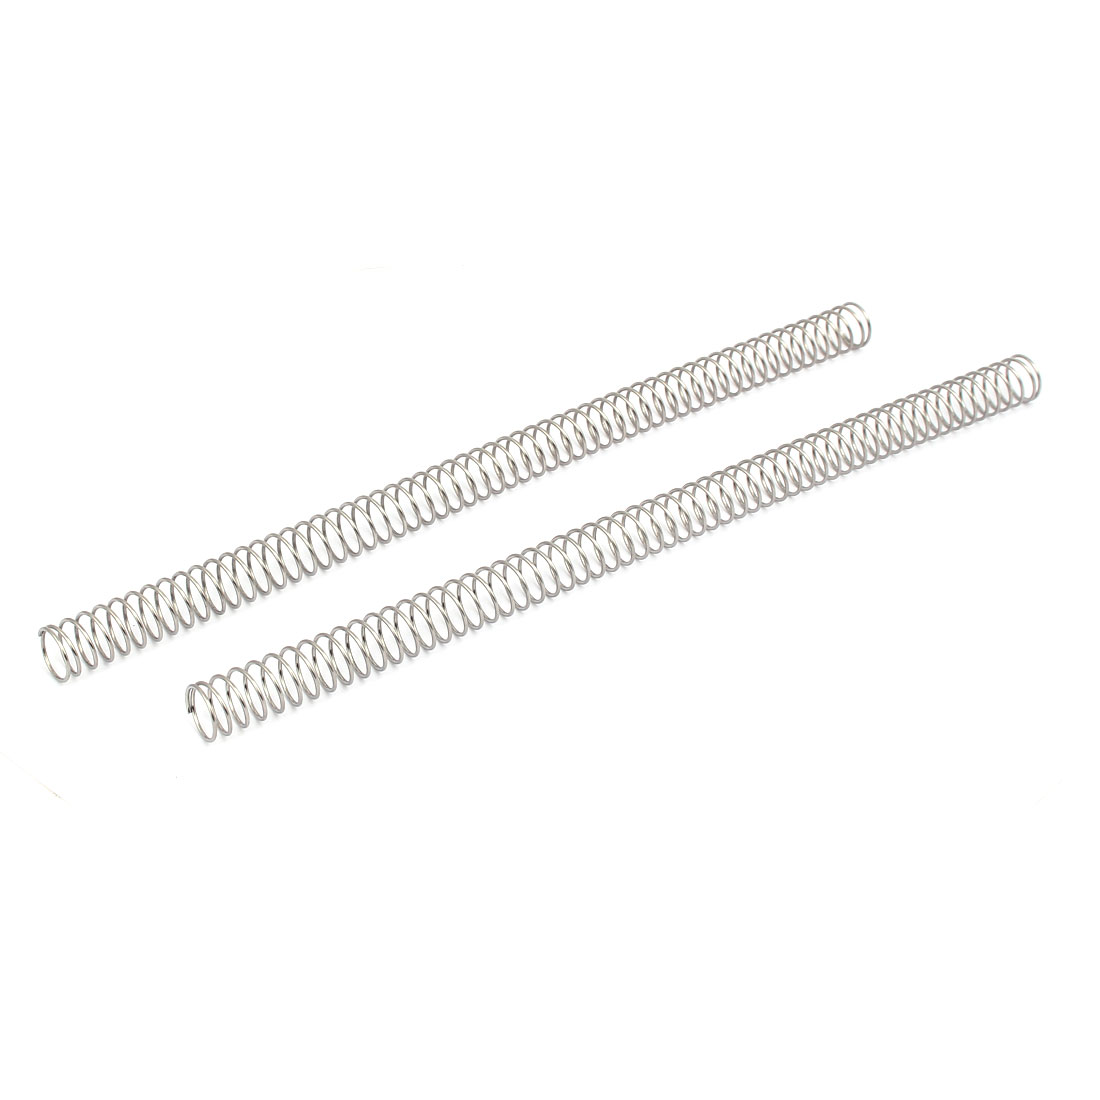 1.2mmx16mmx305mm 304 Stainless Steel Compression Springs Silver Tone 2pcs